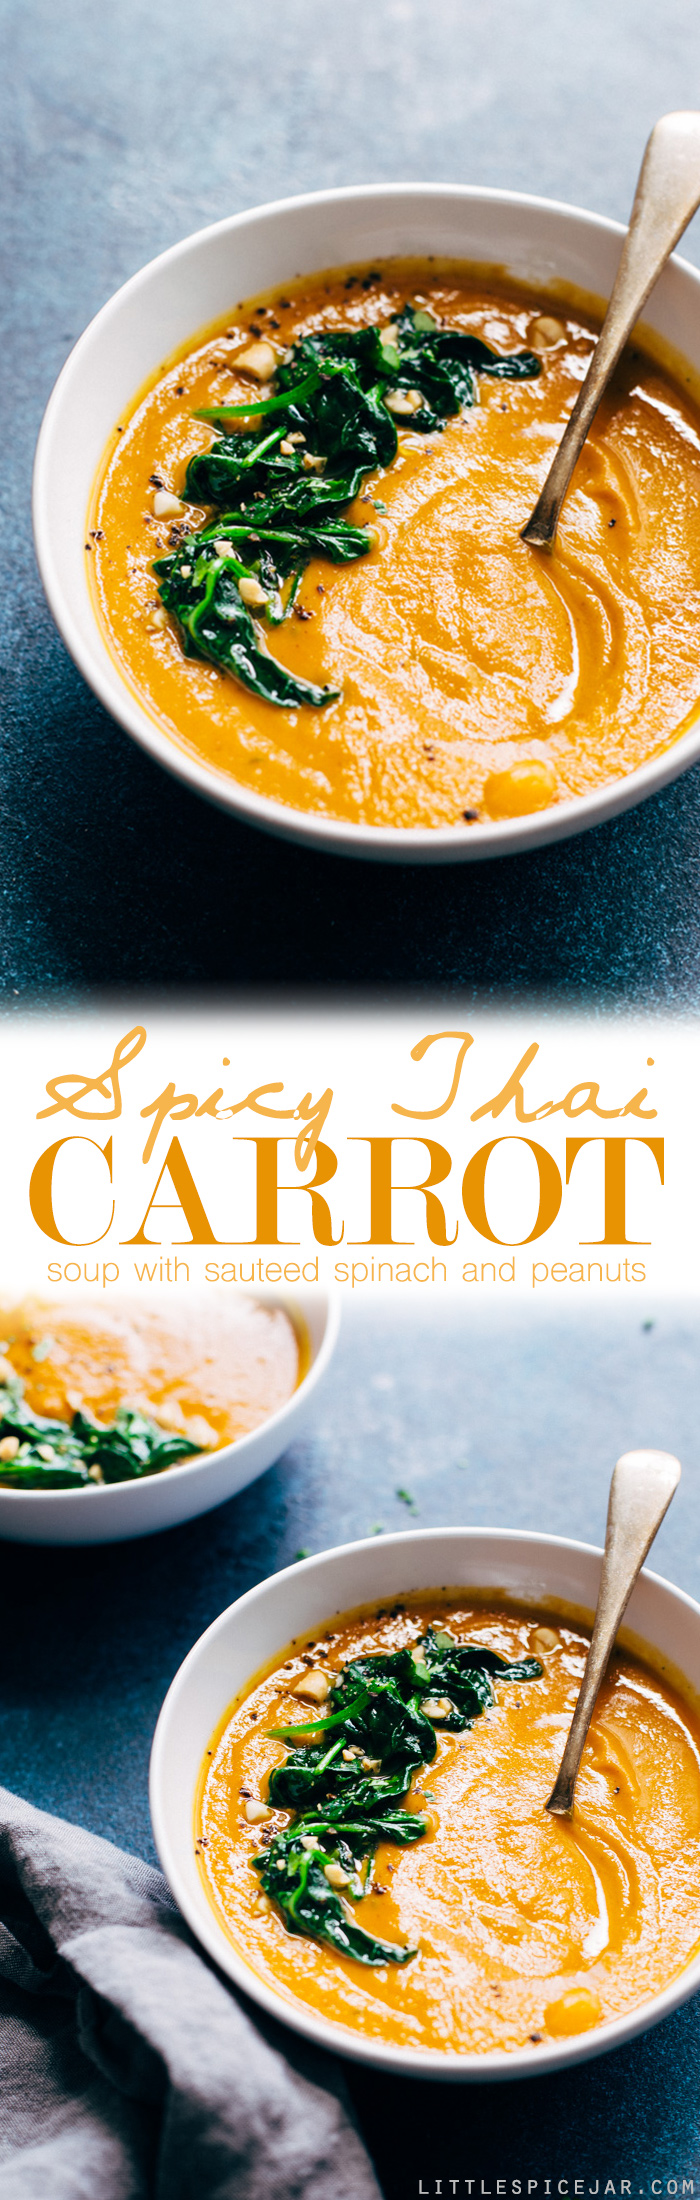 Spicy Thai Carrot Soup - a warm and cozy bowl of soup loaded with lots of veggies and is completely vegan friendly and dairy-free! #vegan #dairyfree #carrotsoup #thaicarrotsoup | Littlespicejar.com